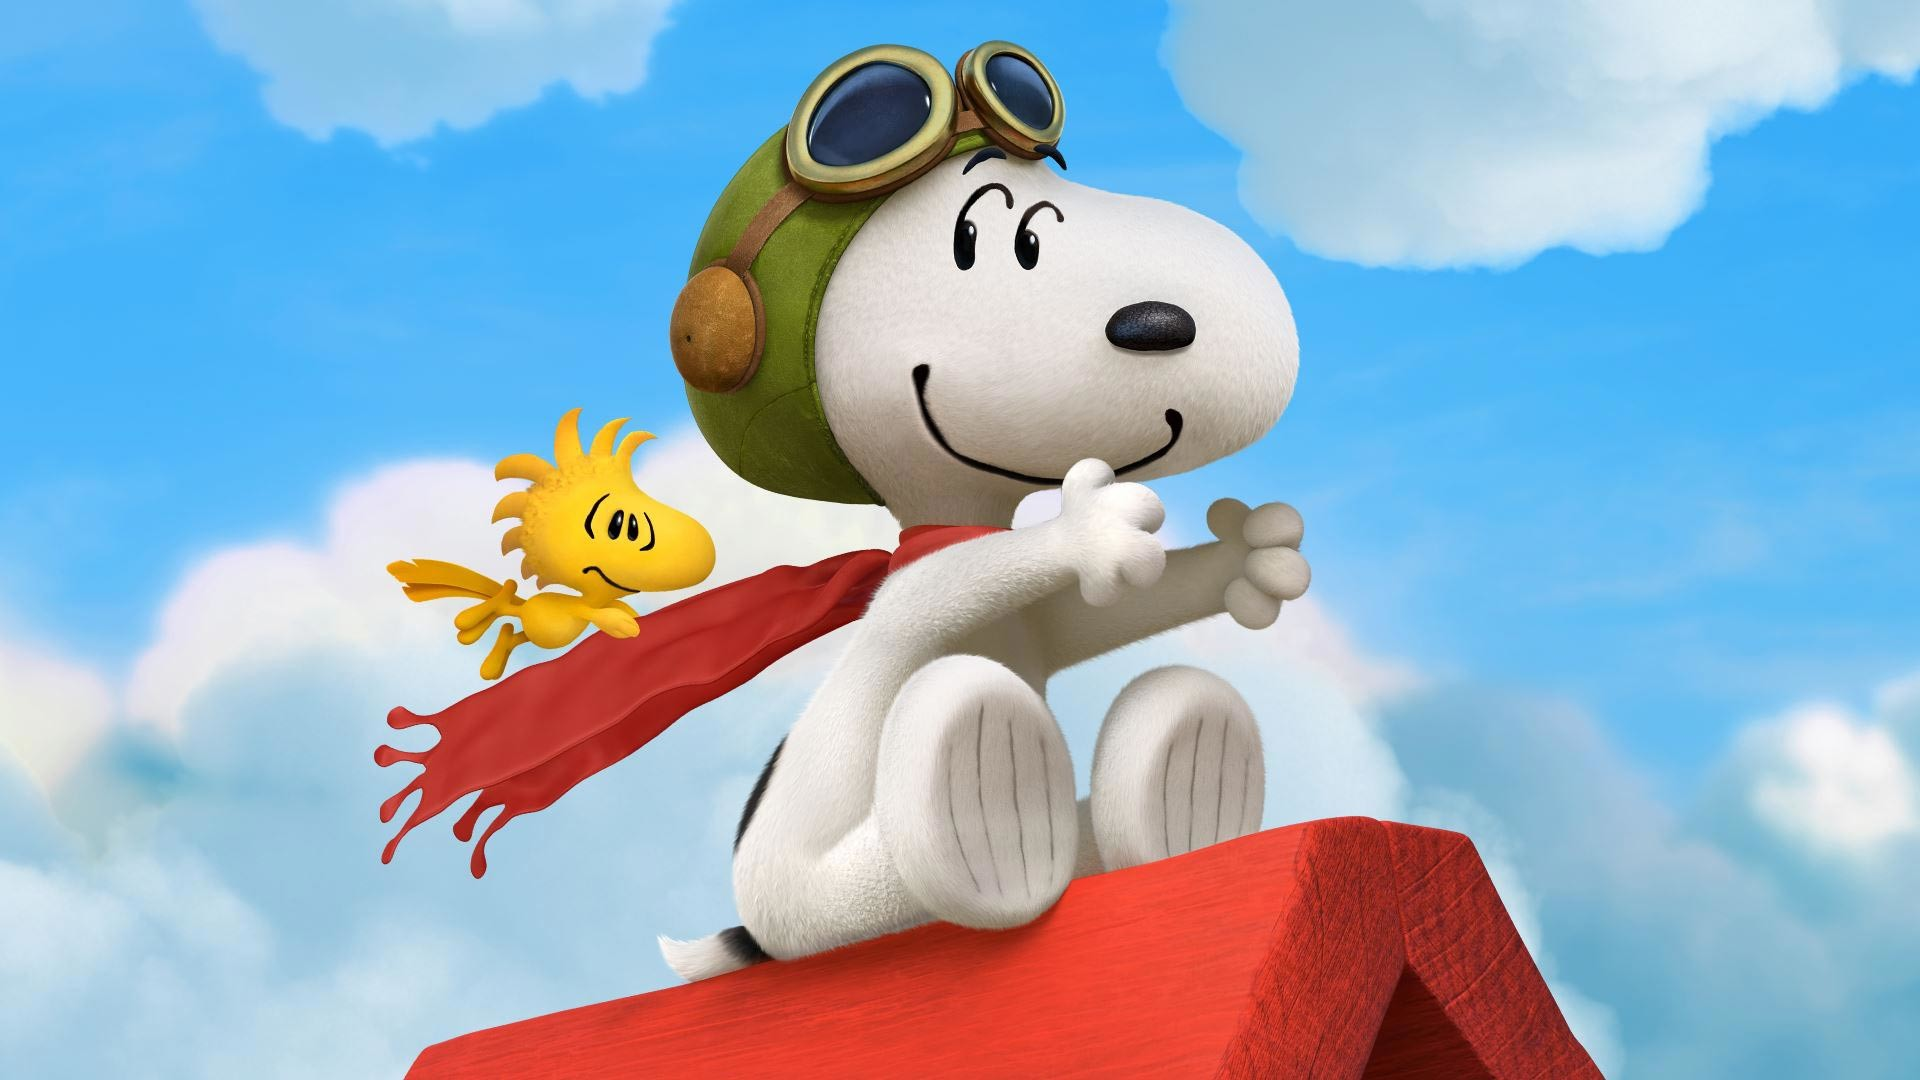 Great artwork released for the Peanuts movie, starring Charlie Brown and  Snoopy with their friends. Featuring characters like Woodstock, Sally, …